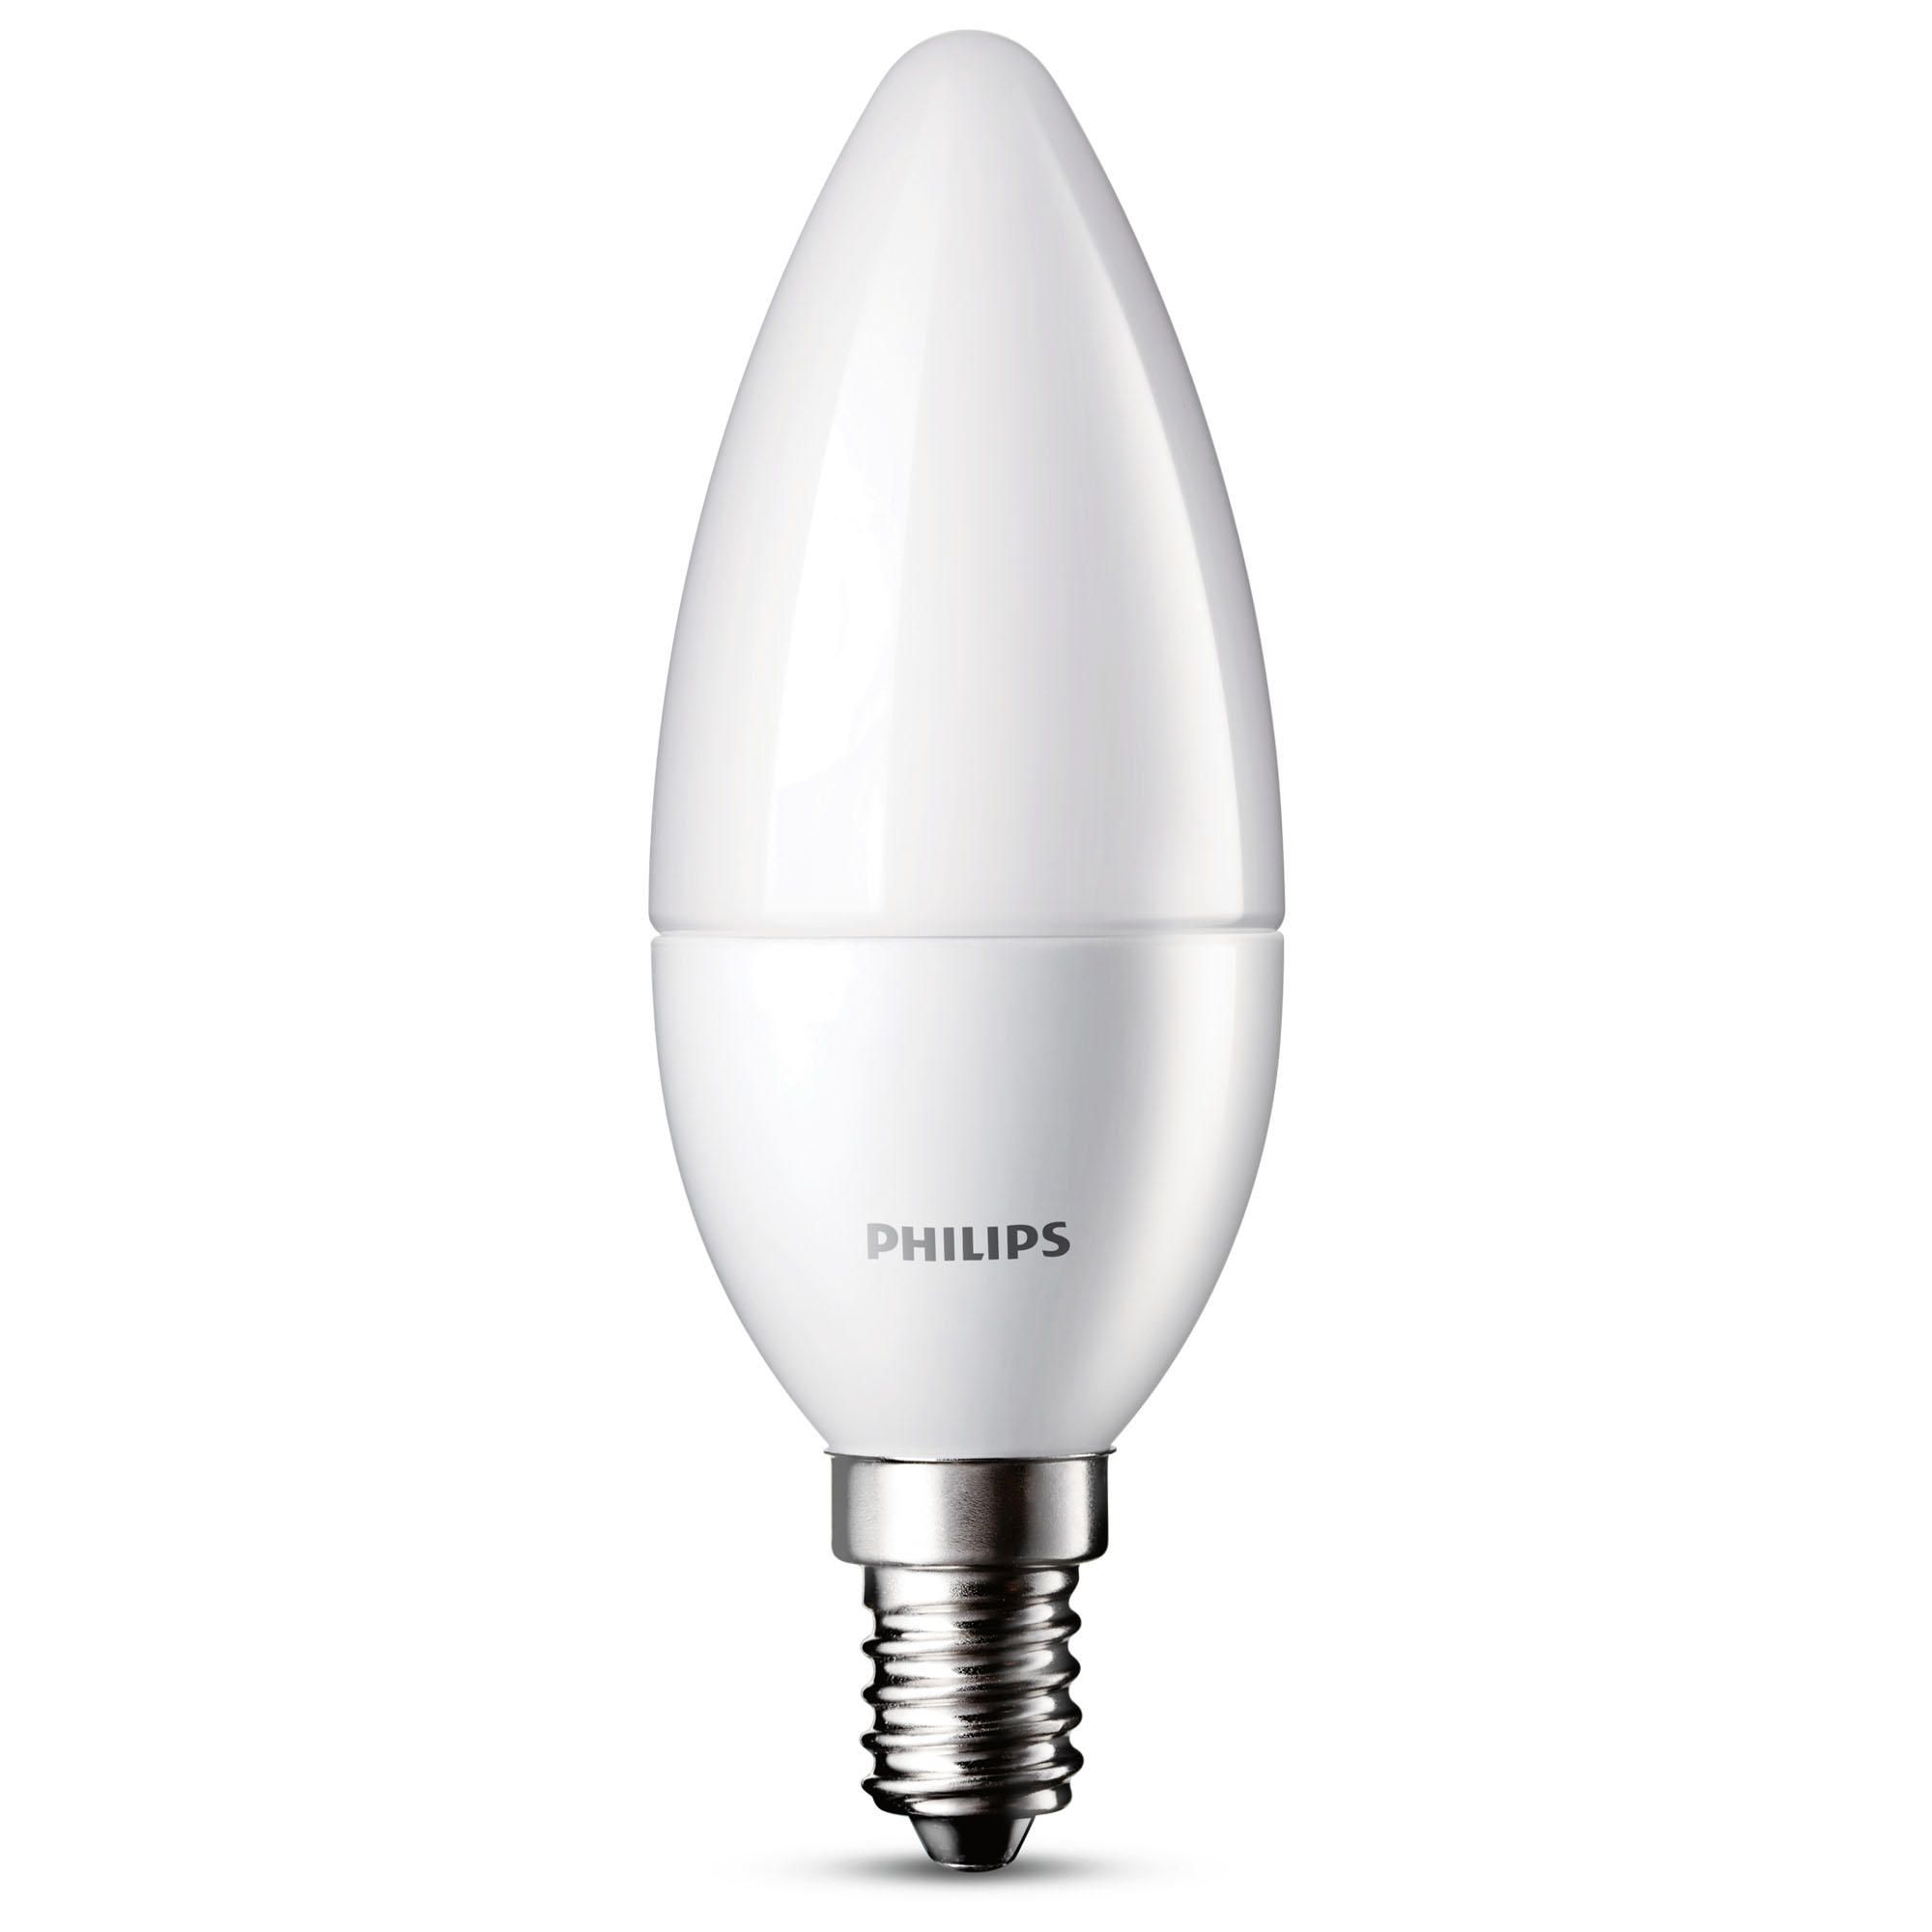 Philips 6 Watt LED E14 Small Edison Screw Candle Light Bulb  Warm White